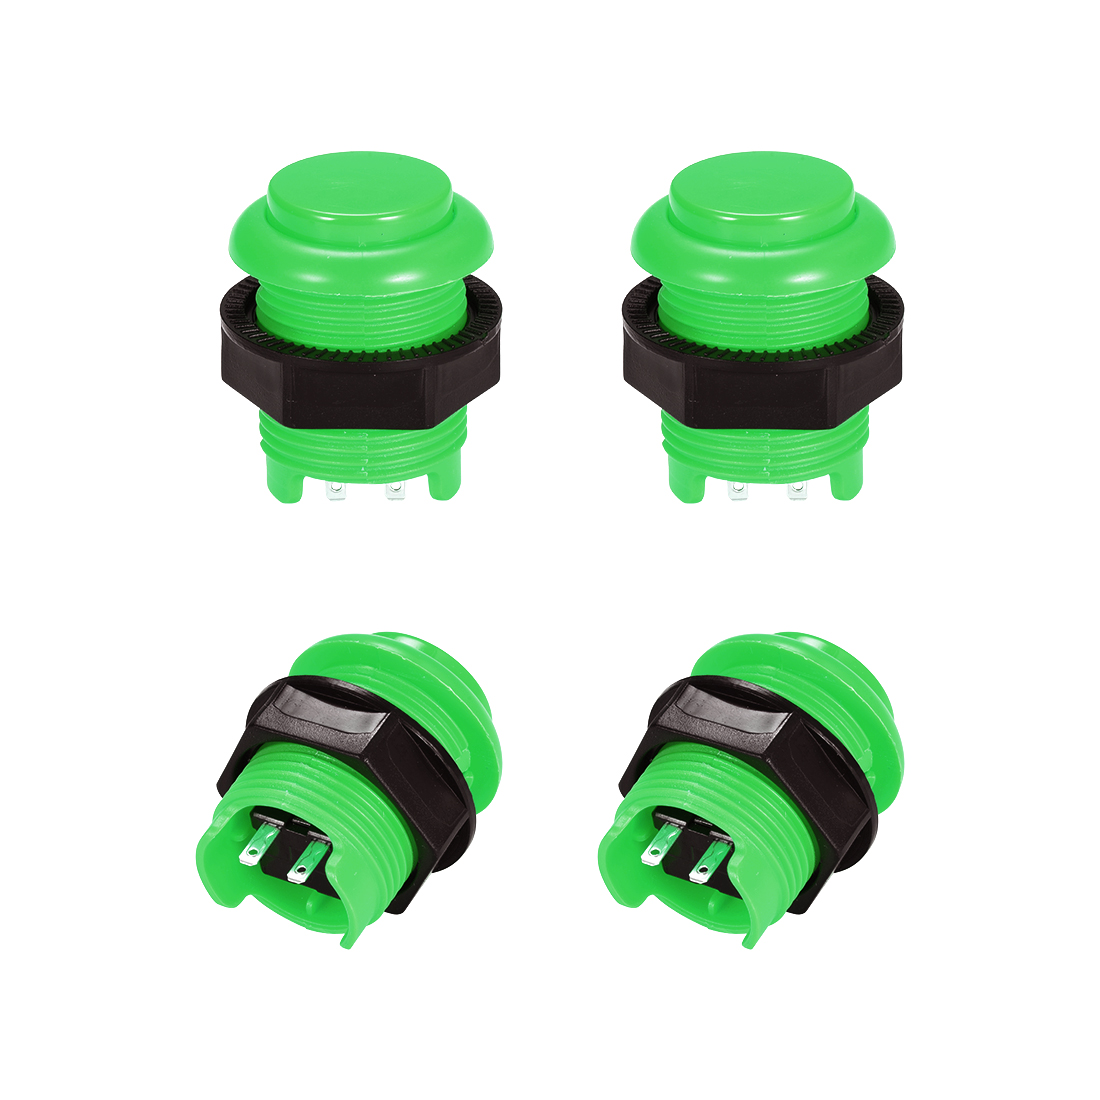 M28 Momentary Game Push Button Switch for Arcade Video Games Green 4pcs